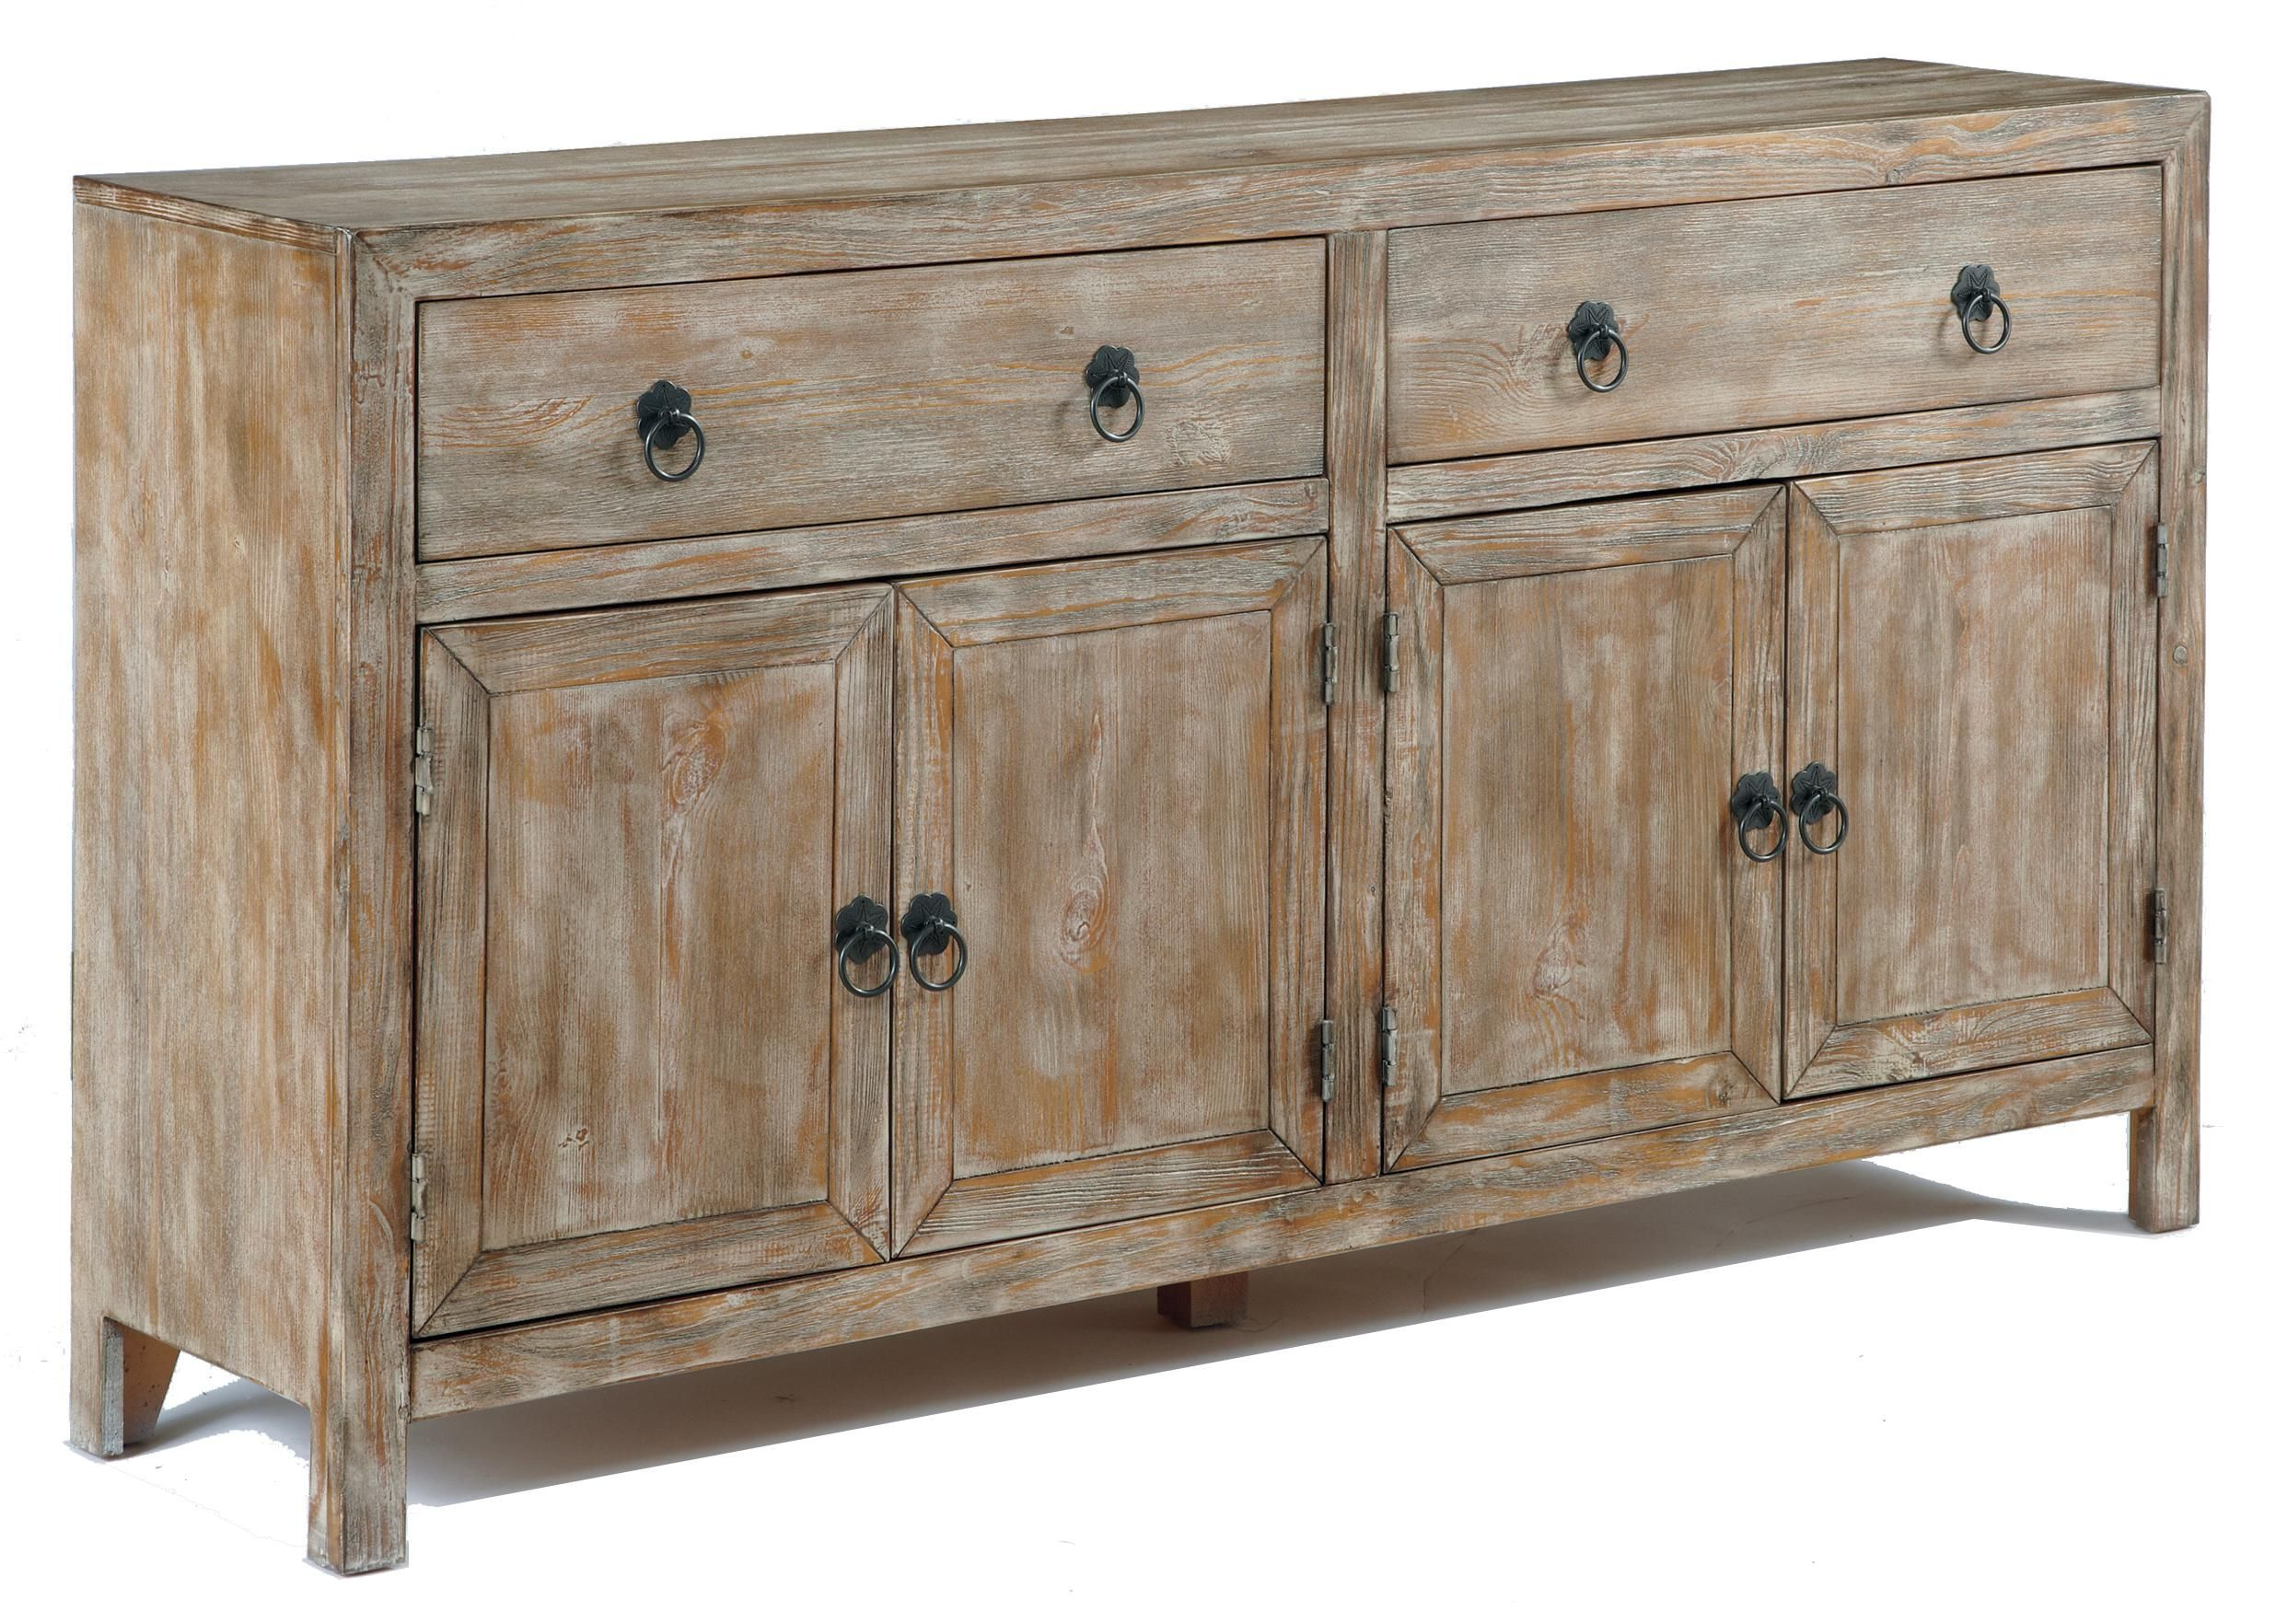 Signature Design by Ashley Vennilux Rustic Accent Cabinet in ...